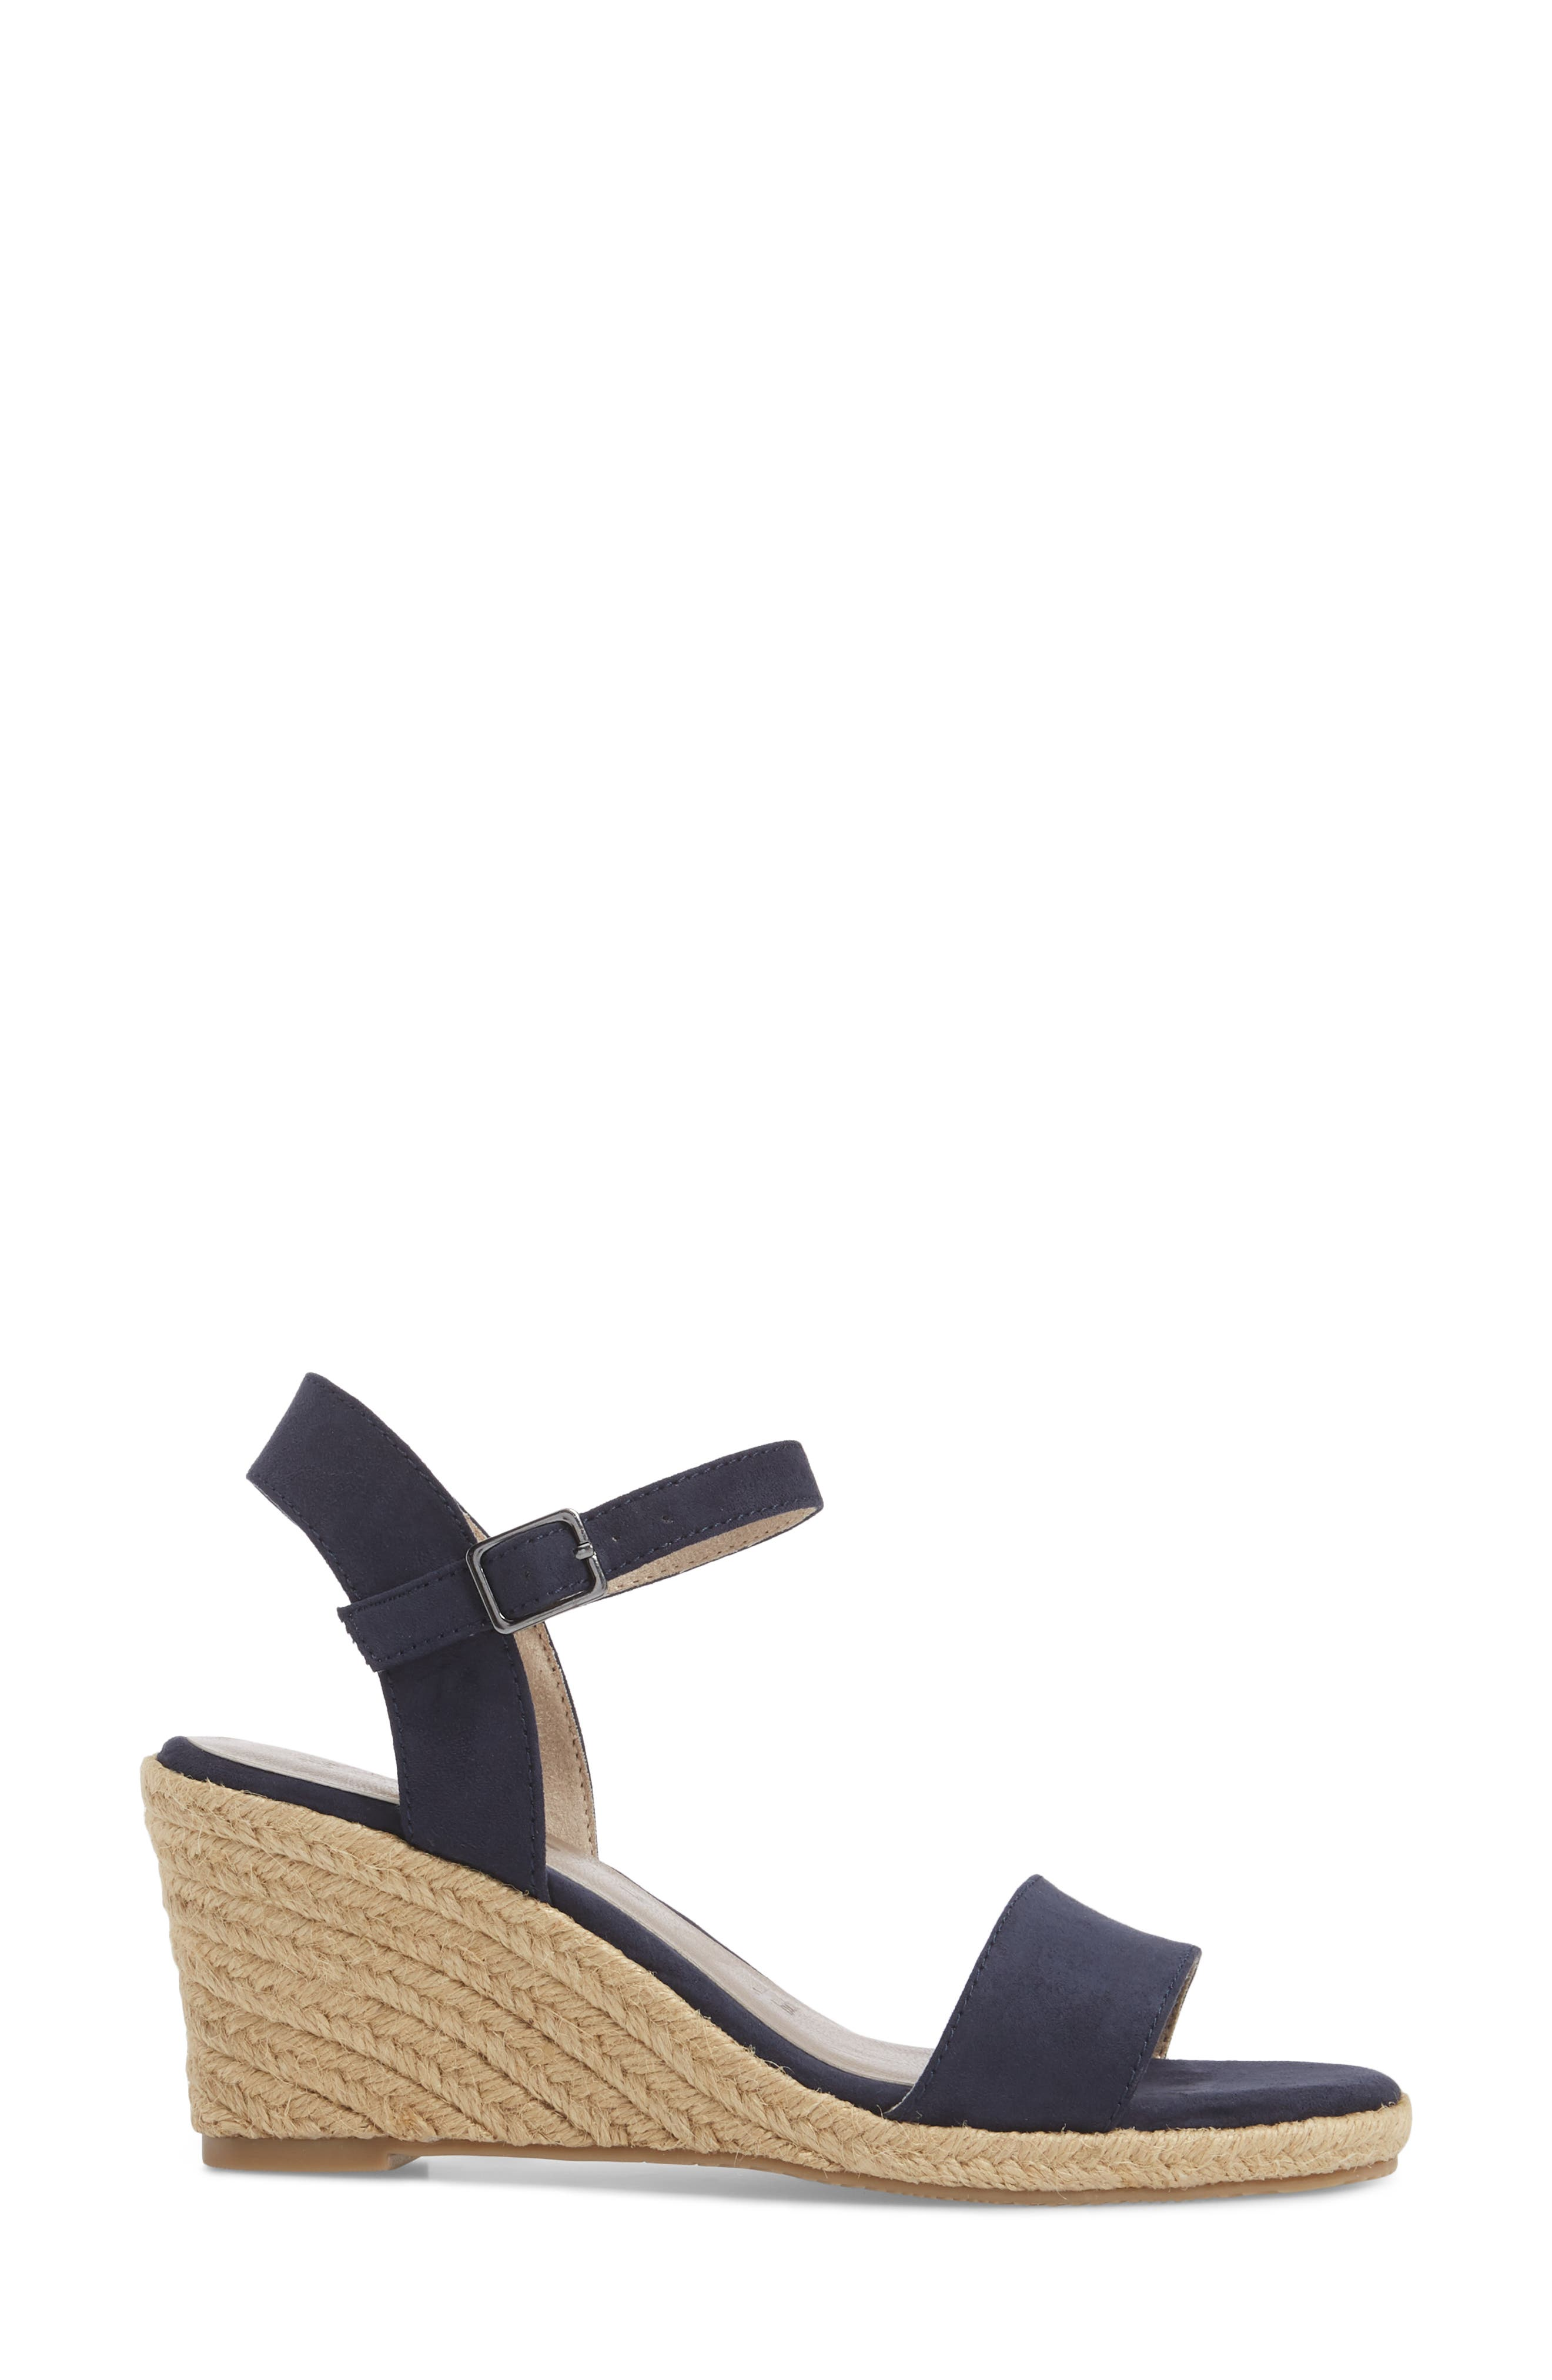 Livia Espadrille Wedge Sandal,                             Alternate thumbnail 3, color,                             NAVY FABRIC